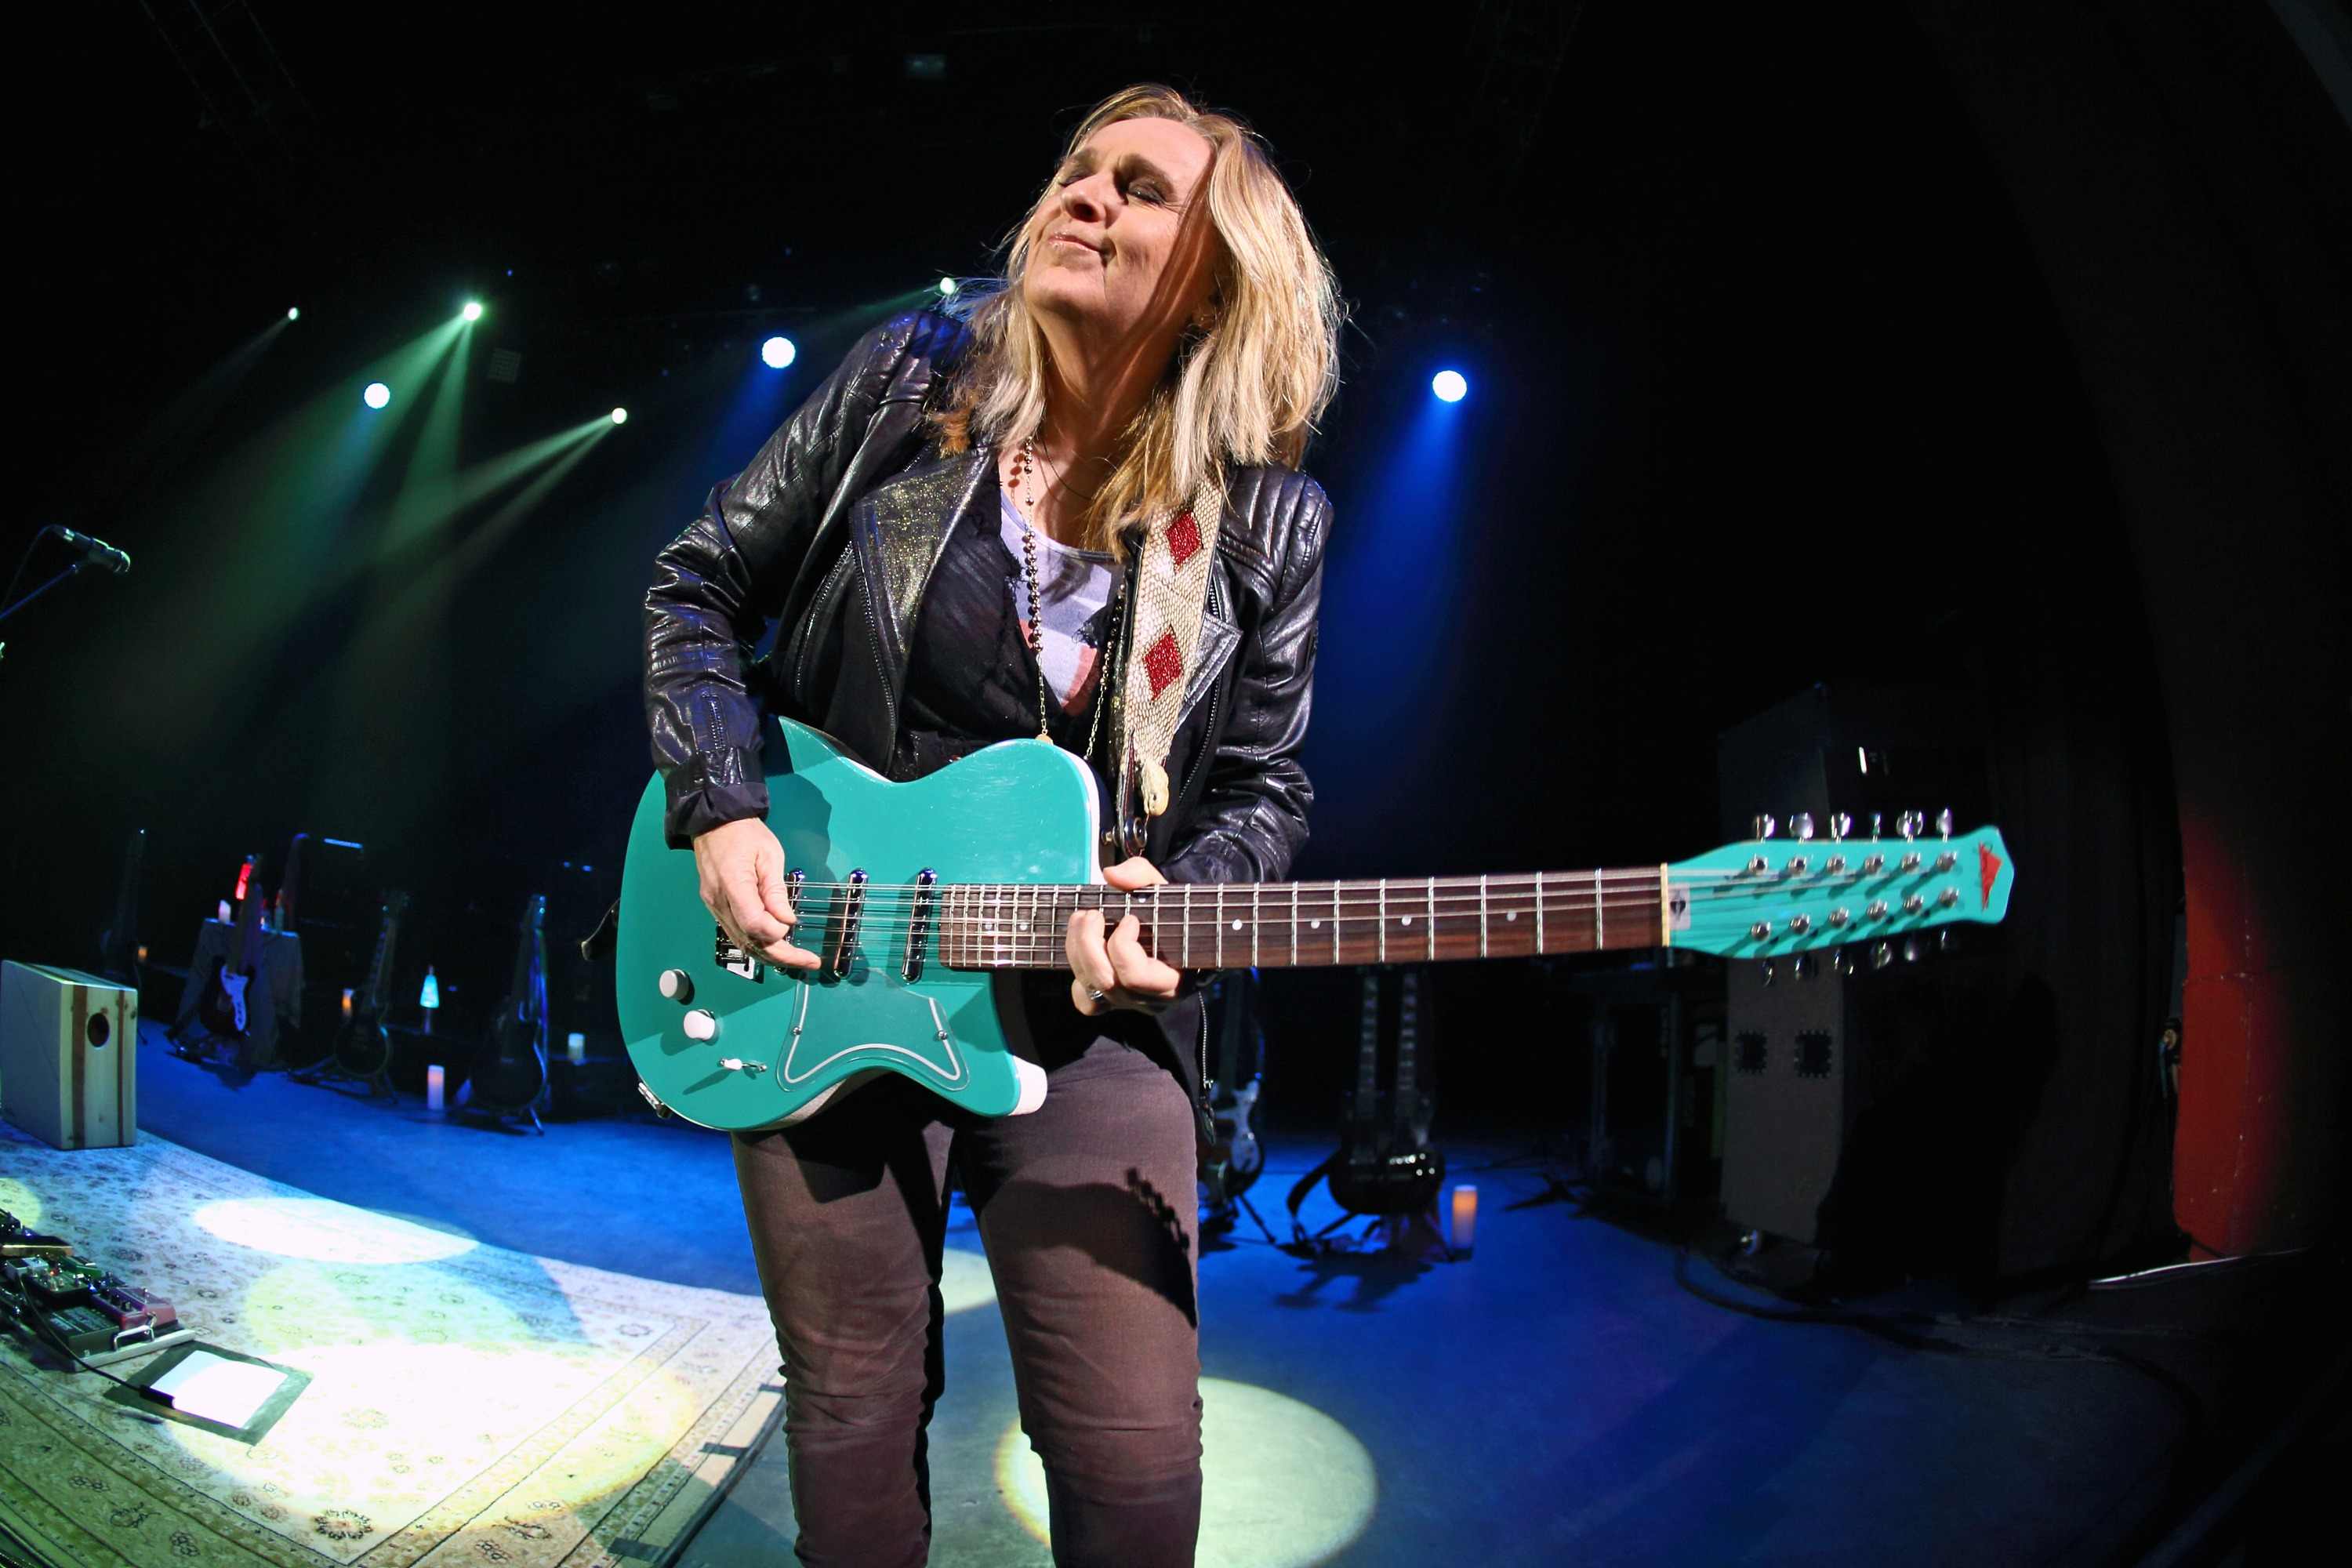 Melissa Etheridge and George Thorogood & The Destroyers at Ravinia